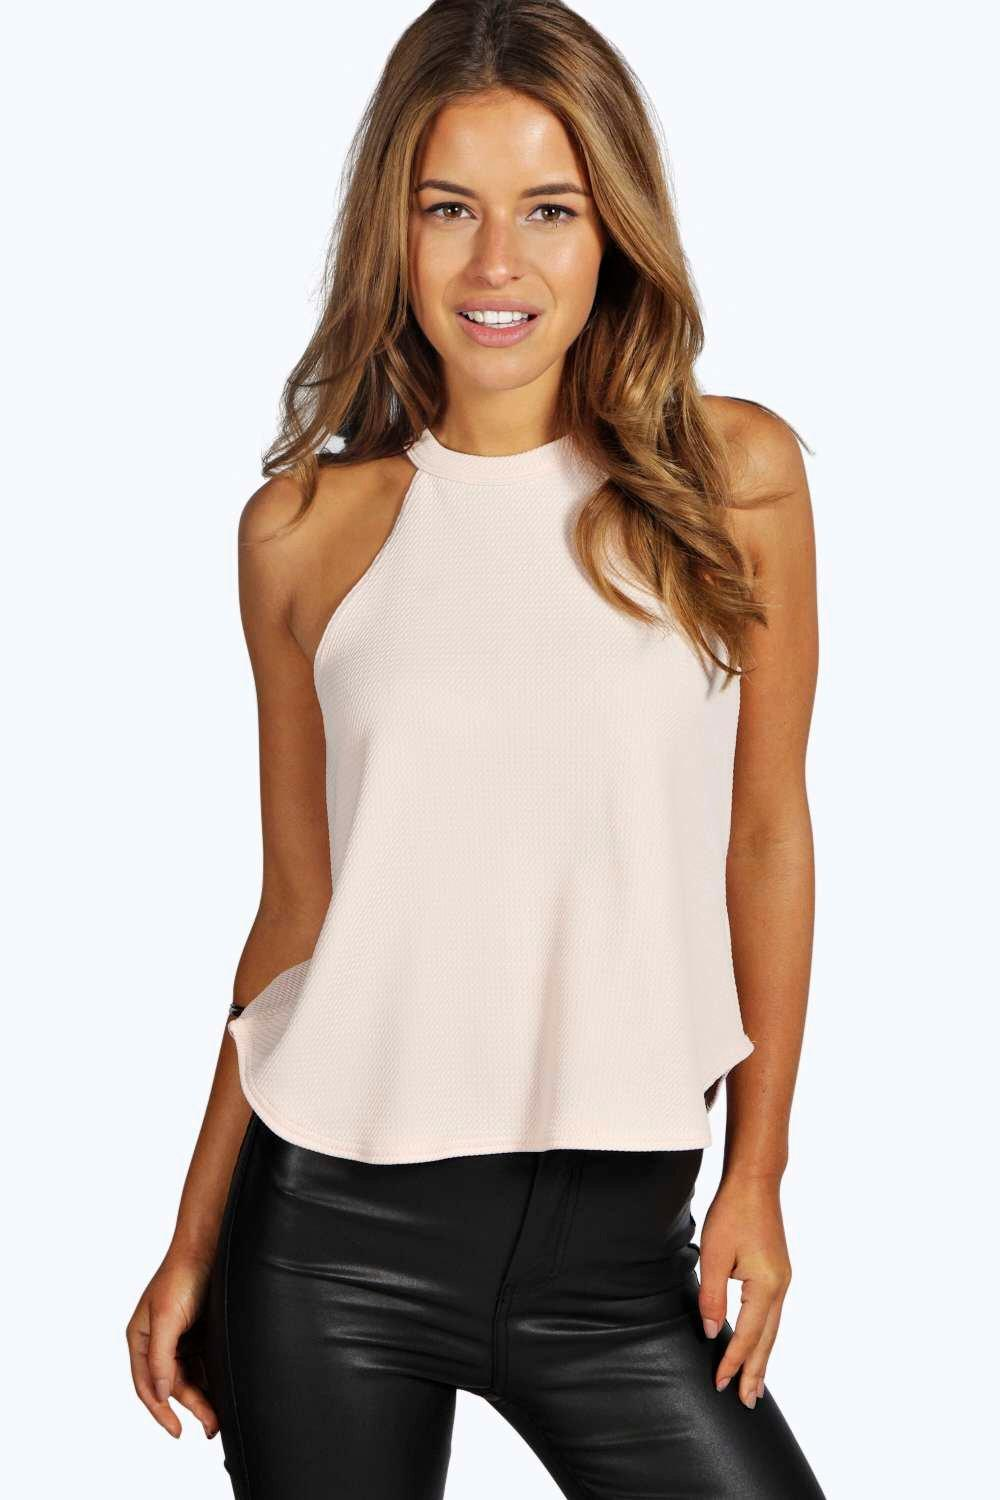 FREE SHIPPING AVAILABLE! Shop hereffil53.cf and save on Clearance Petites Size Tops.